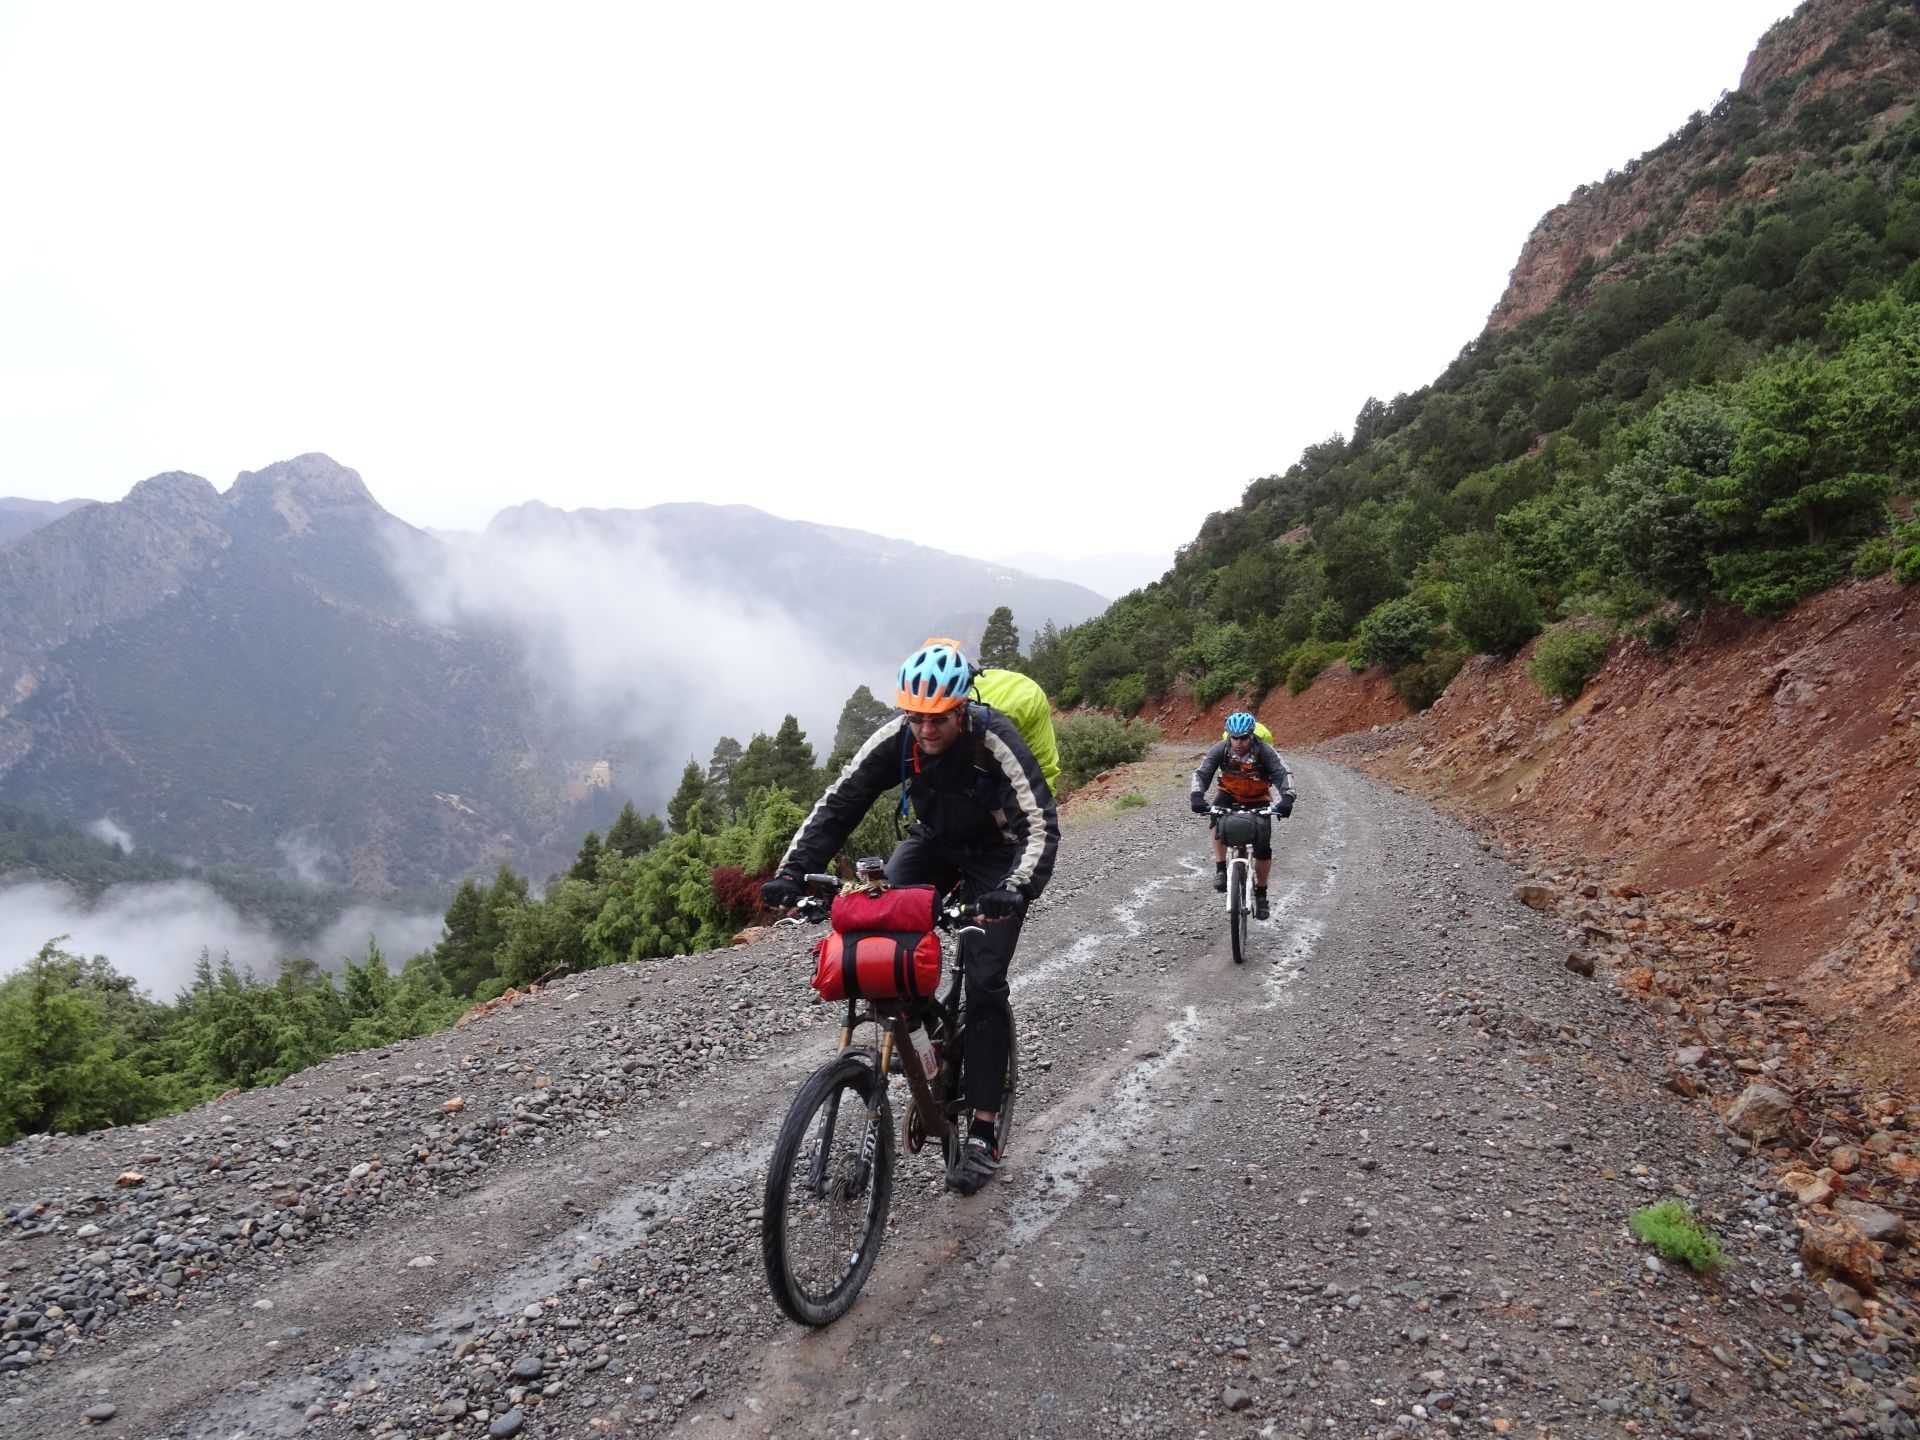 Day 2 - A really, really tough day on the bikes! The grind in the rain toward Zawyat Ahansal, & our accommodation for the night. © Steve Woodward